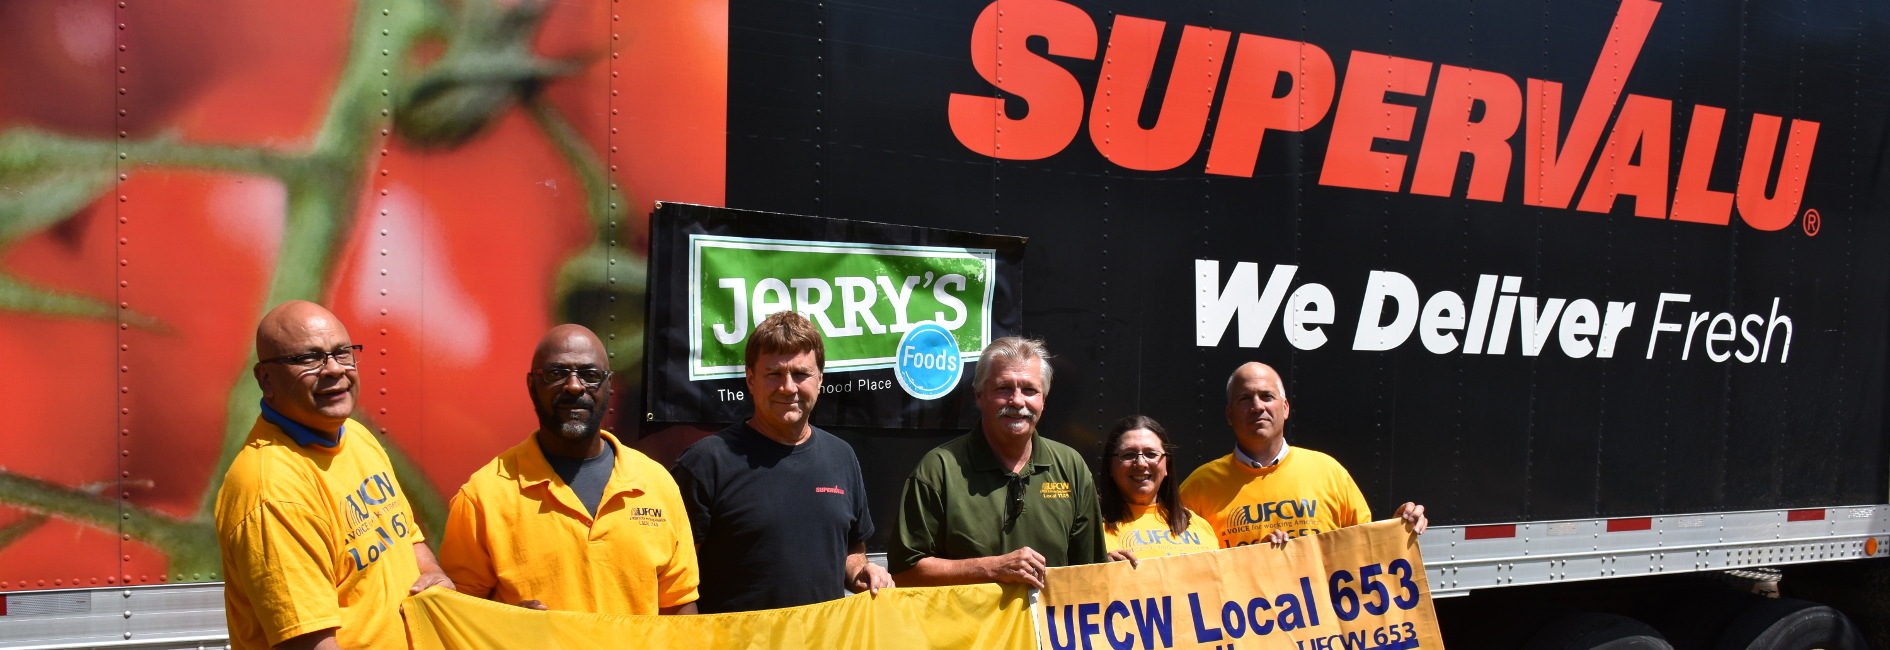 UFCW Local 653, Supervalu, and Jerry's Enterprises help Iowa Tornado Victims